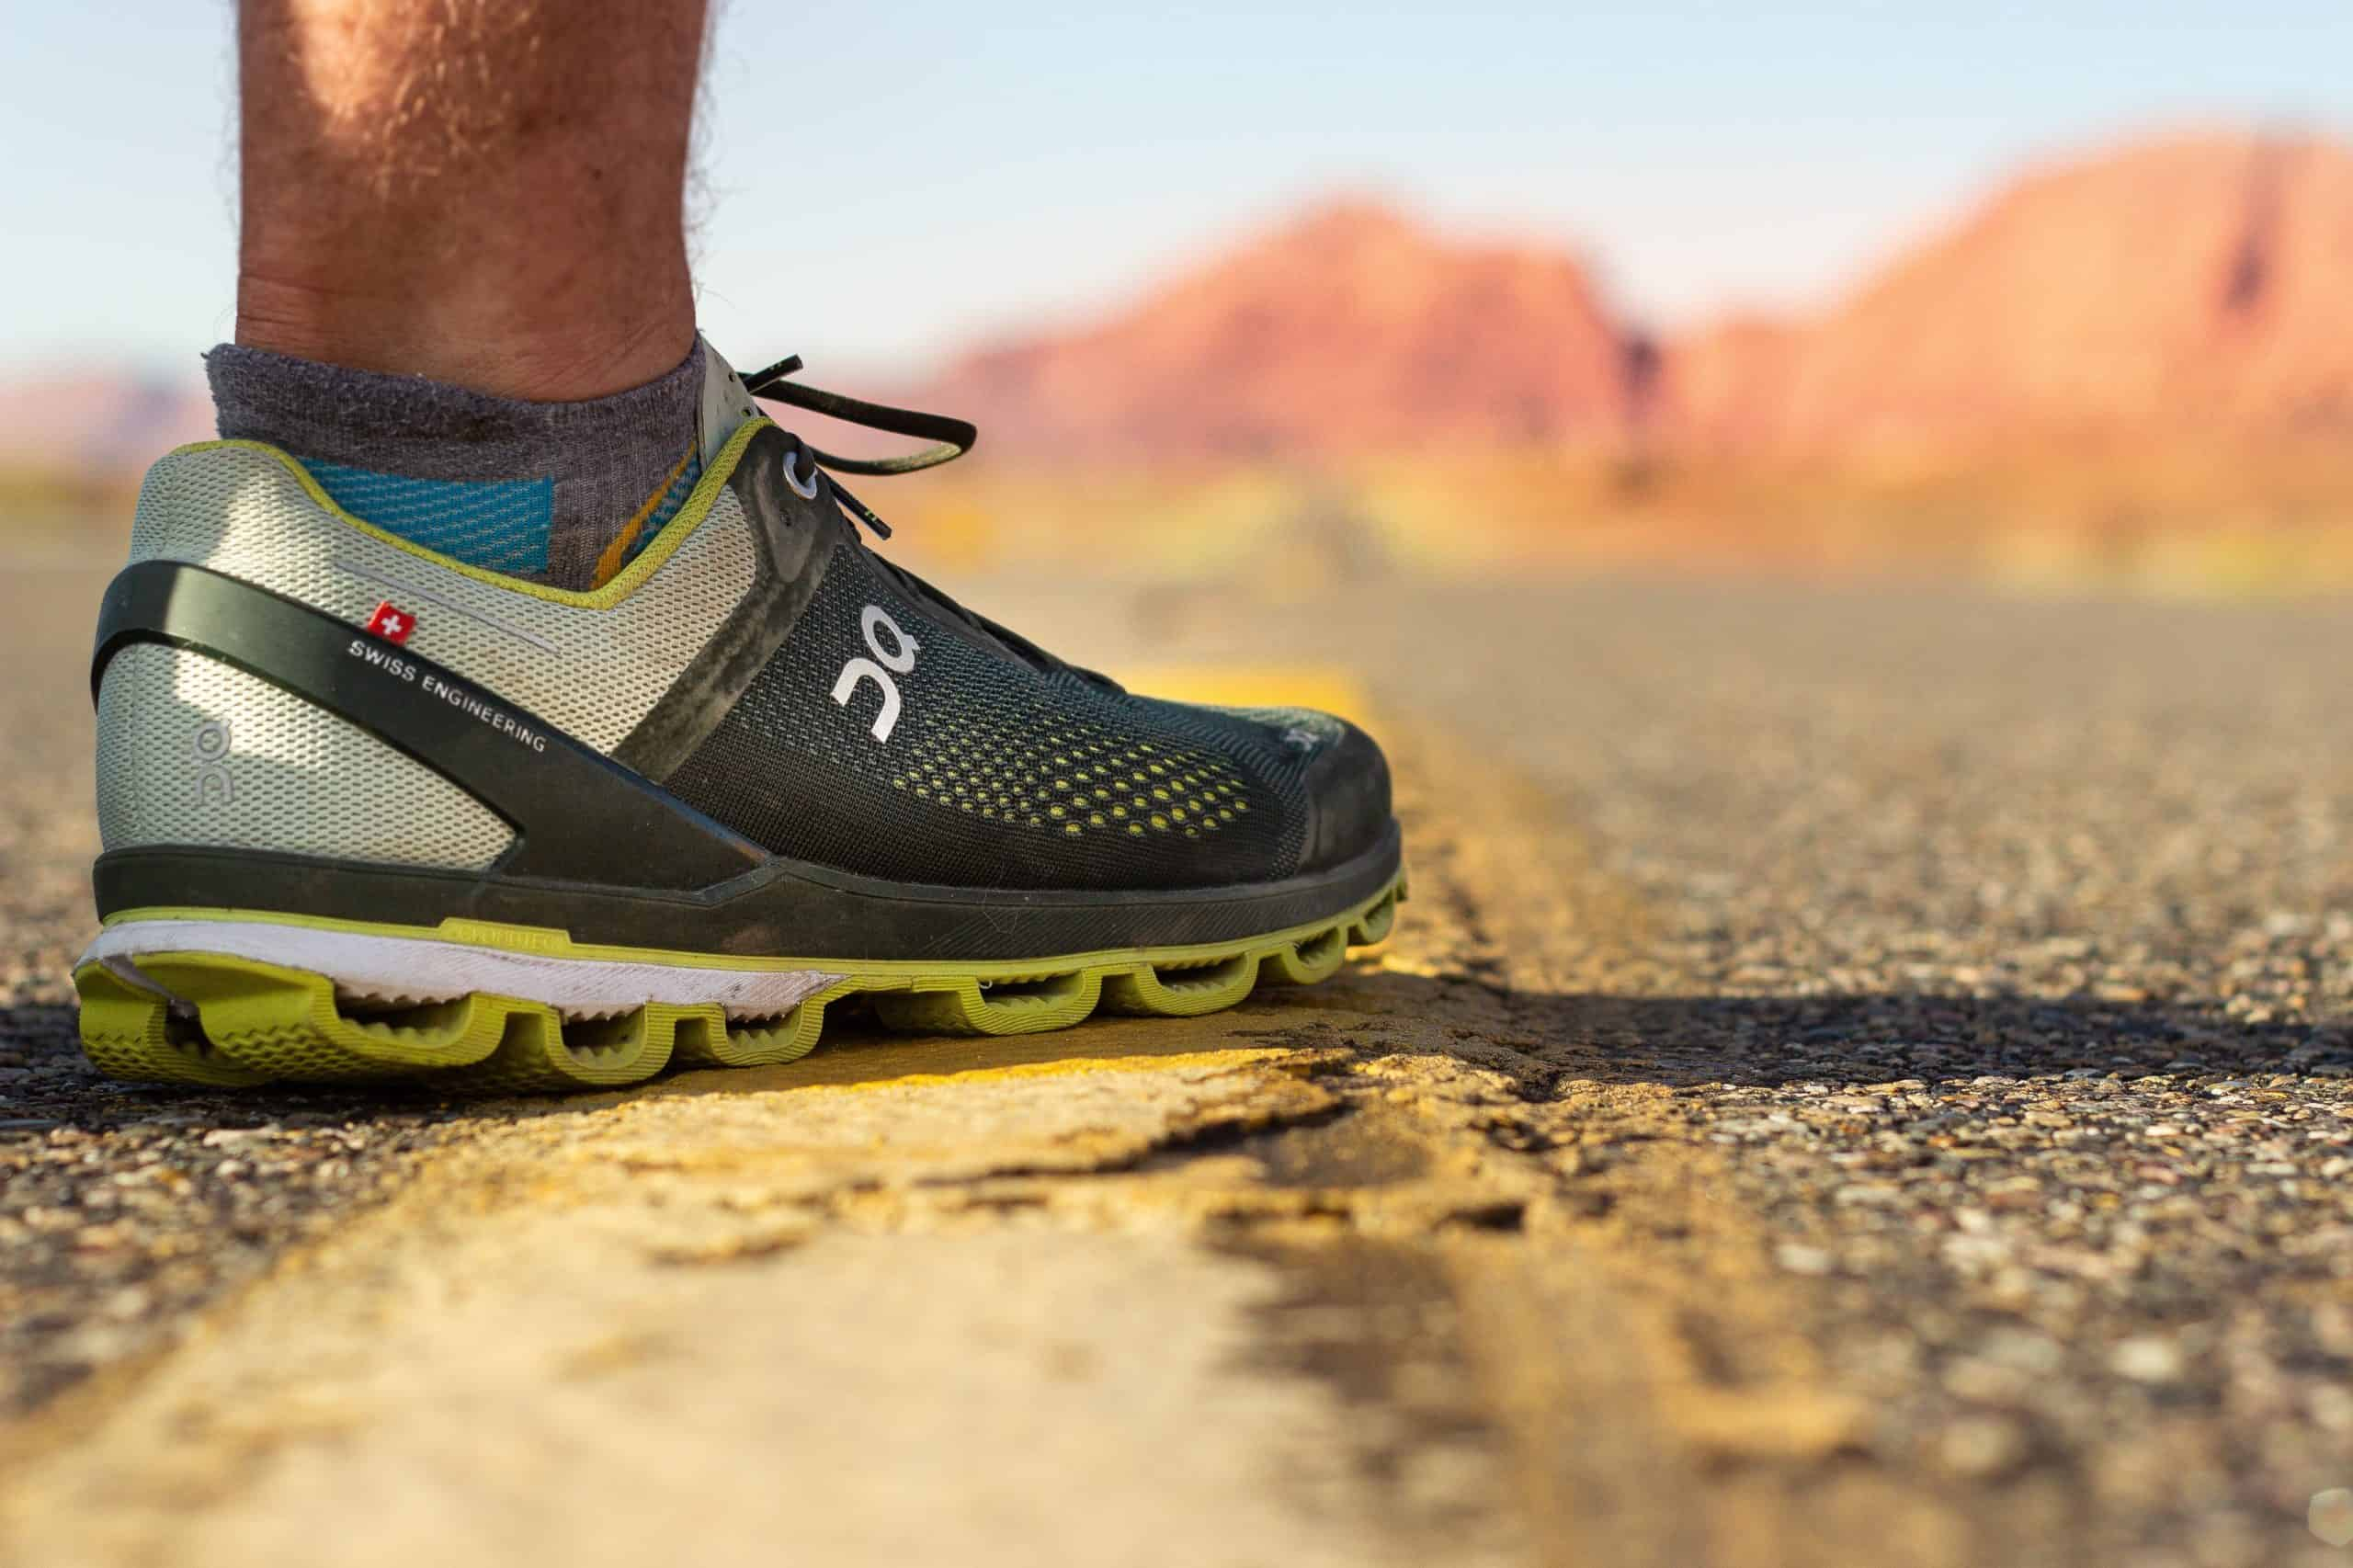 Marathon Trainings - Do You Need To Spend Much On Your Shoes?